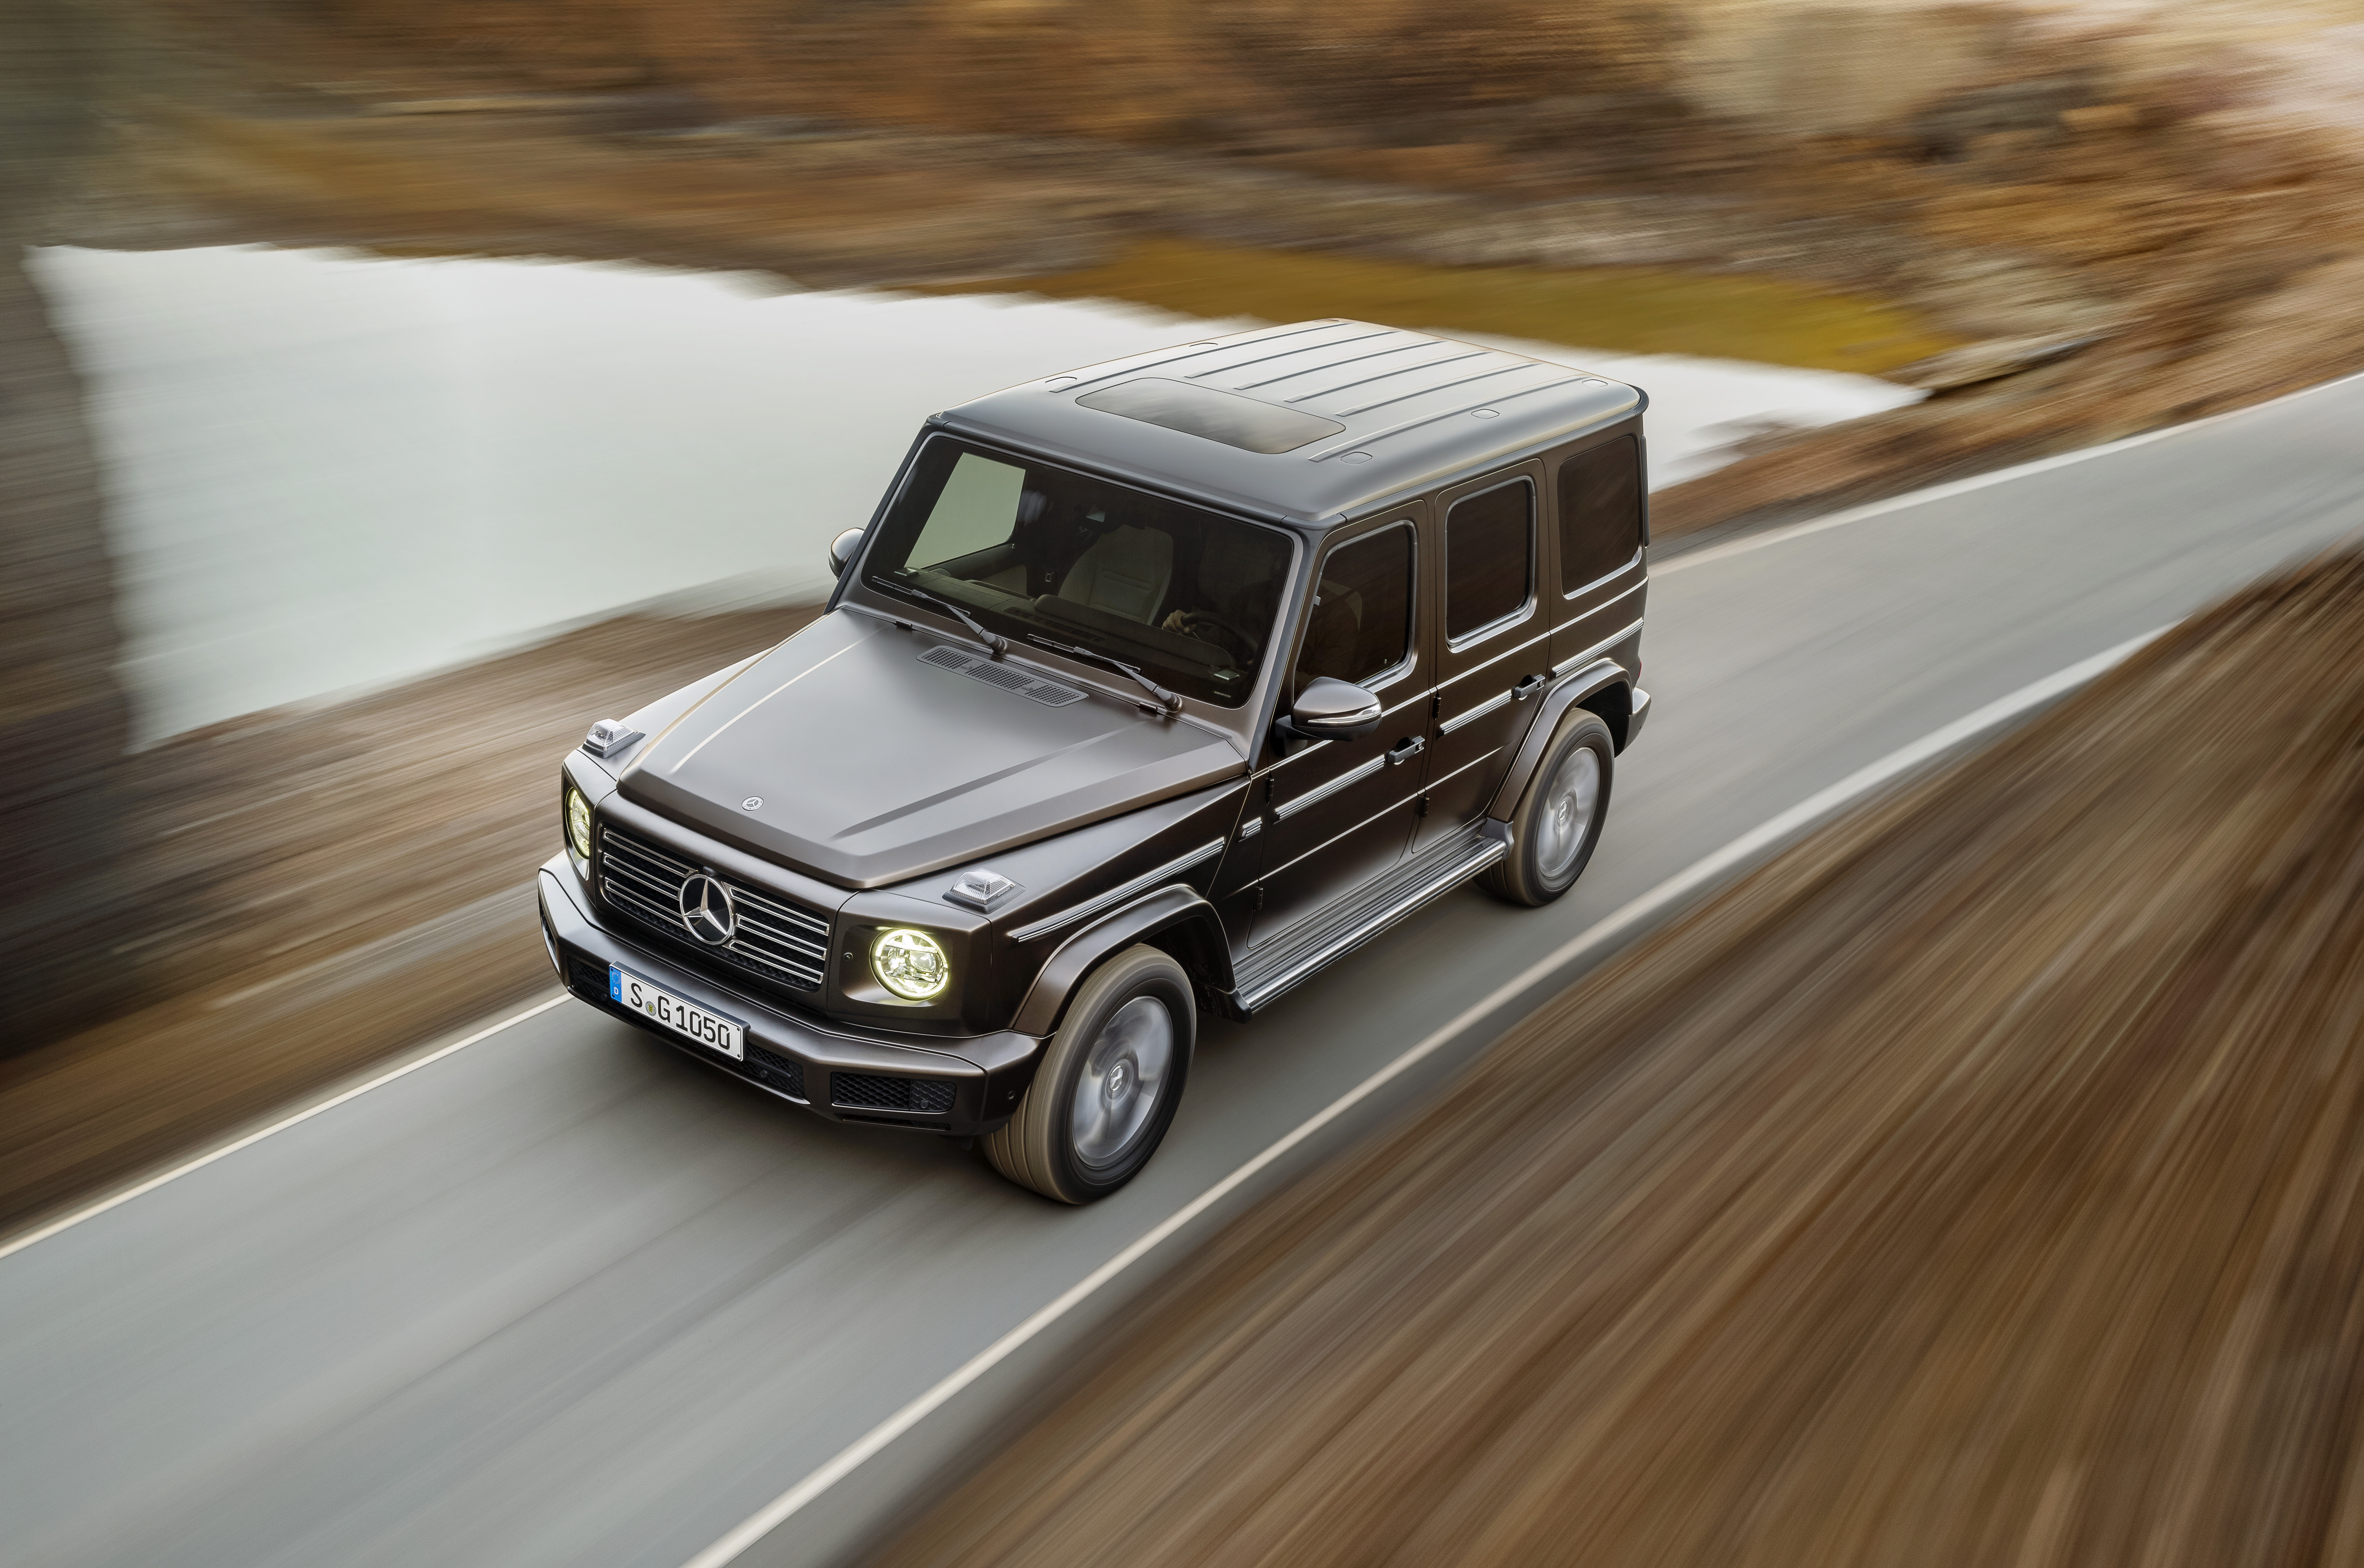 2019 Mercedes G Class, HD Cars, 4k Wallpapers, Images ...